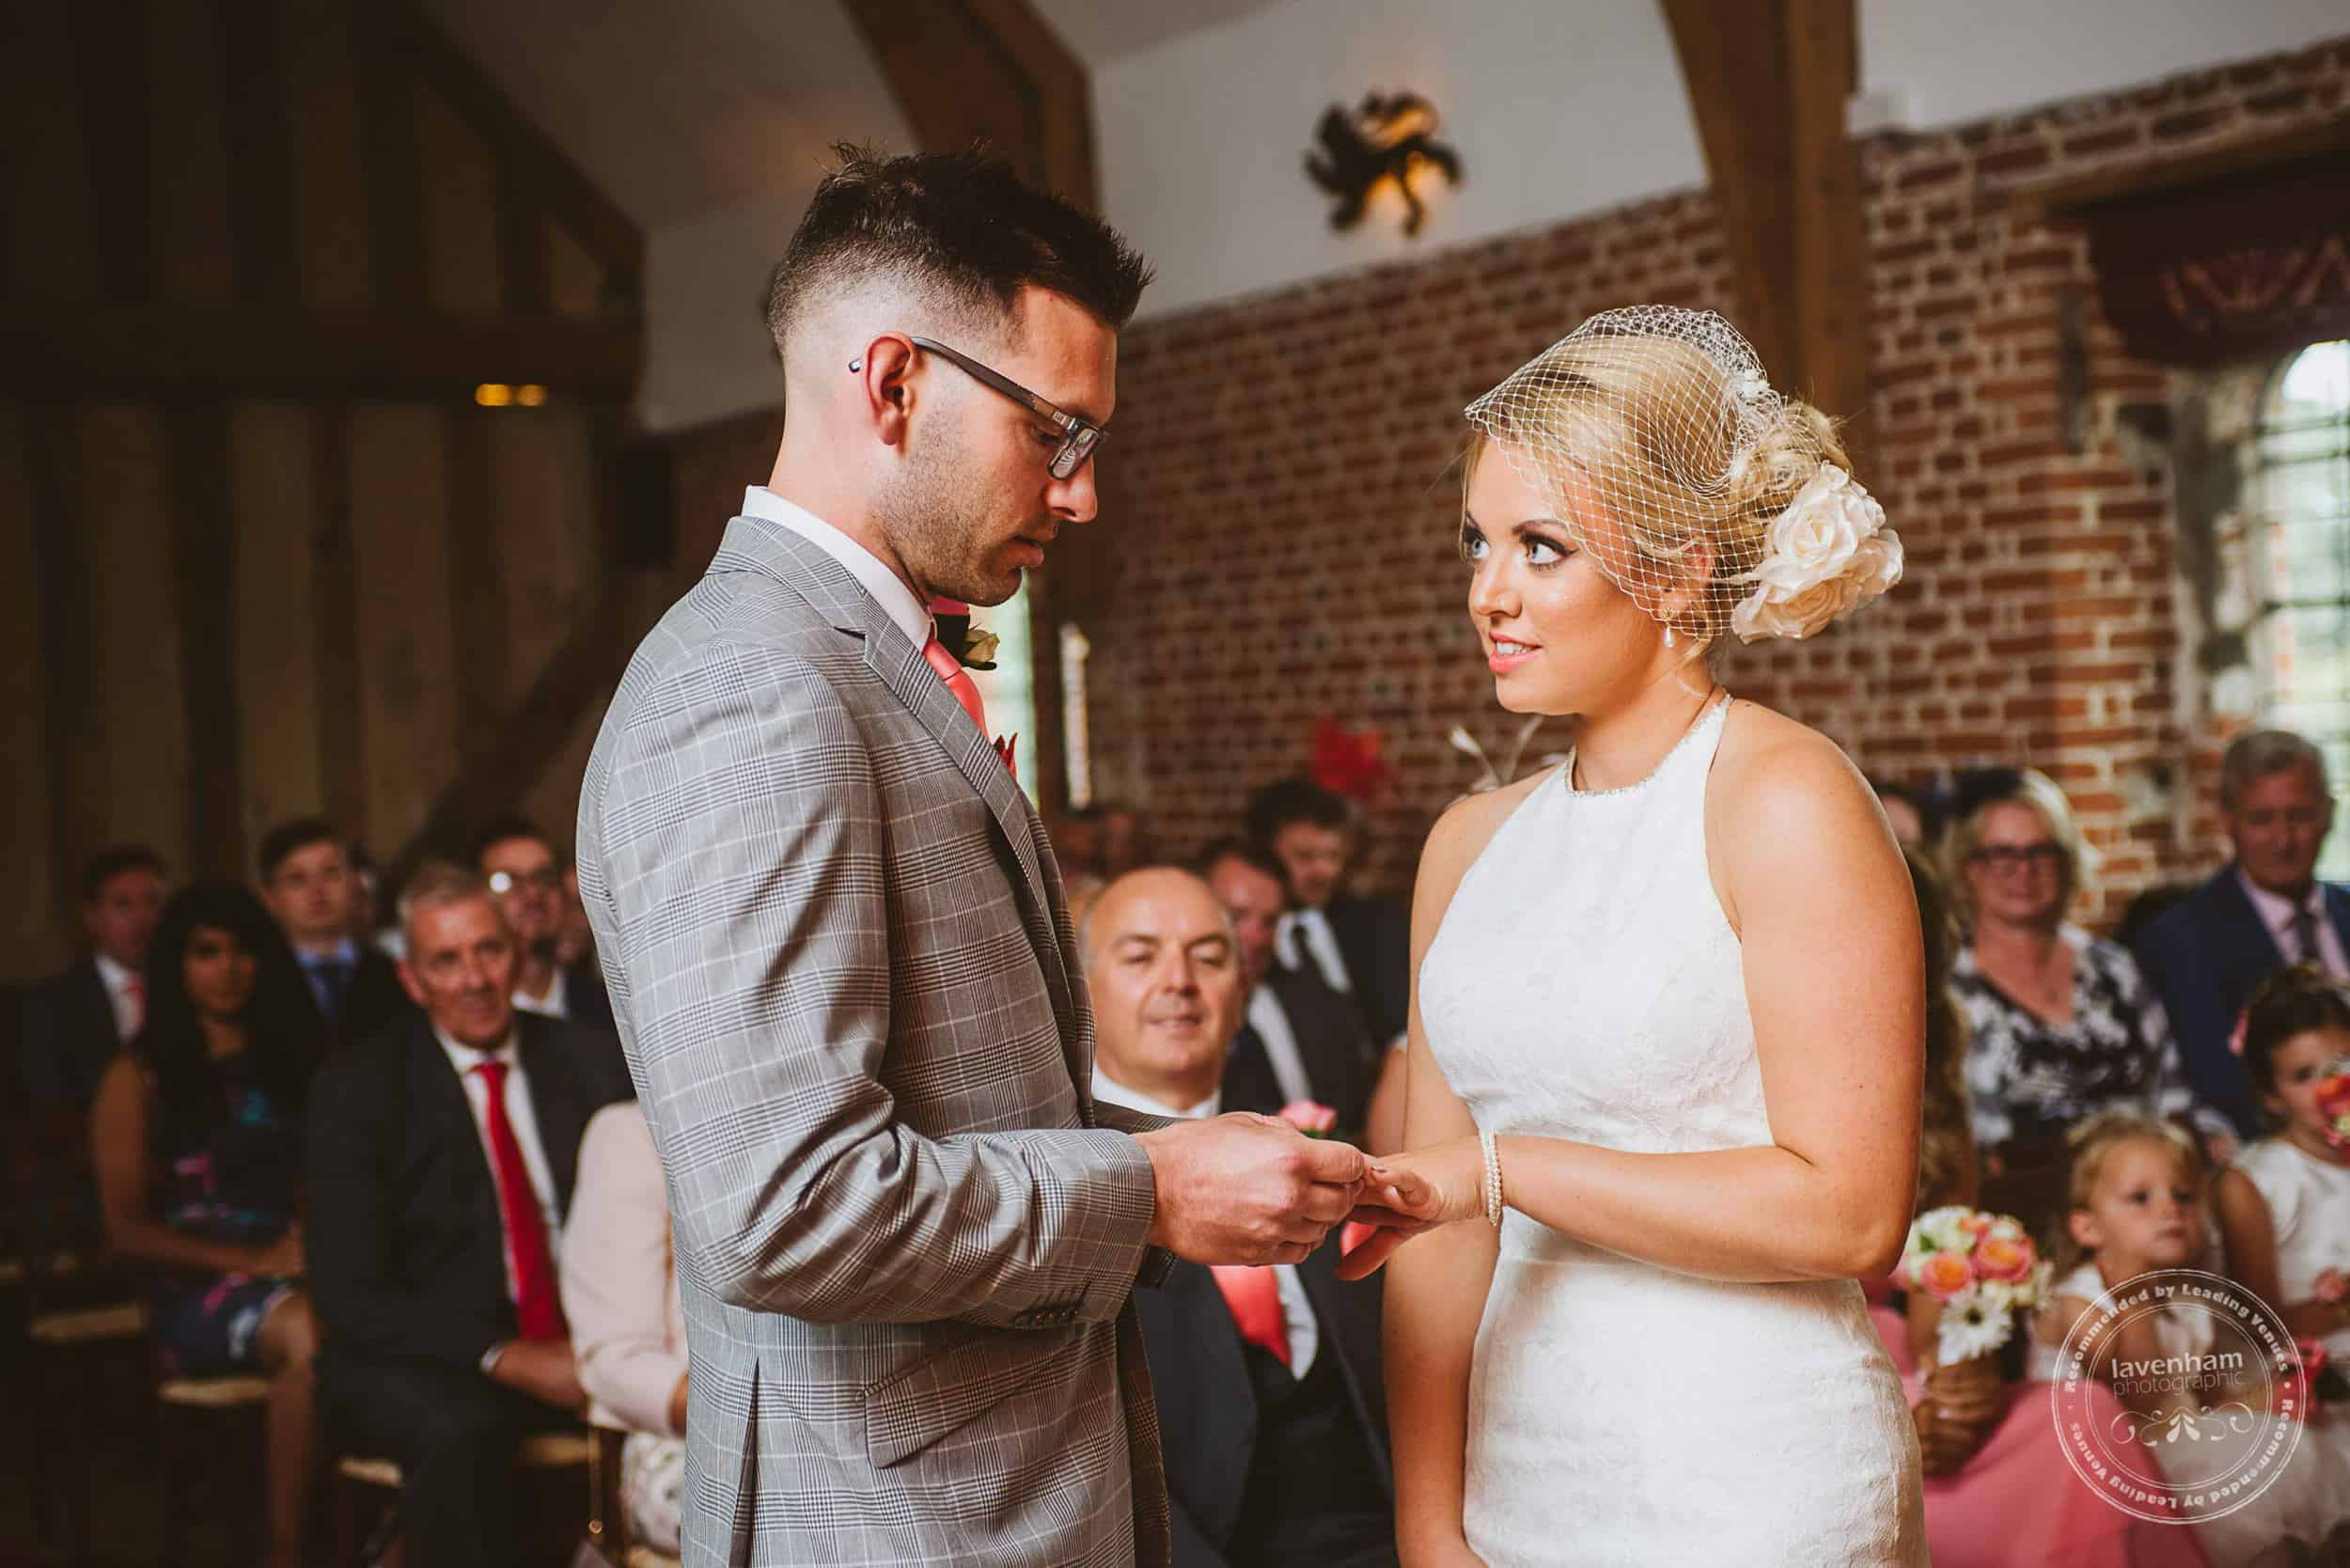 140717 Layer Marney Wedding Photography by Lavenham Photographic 040